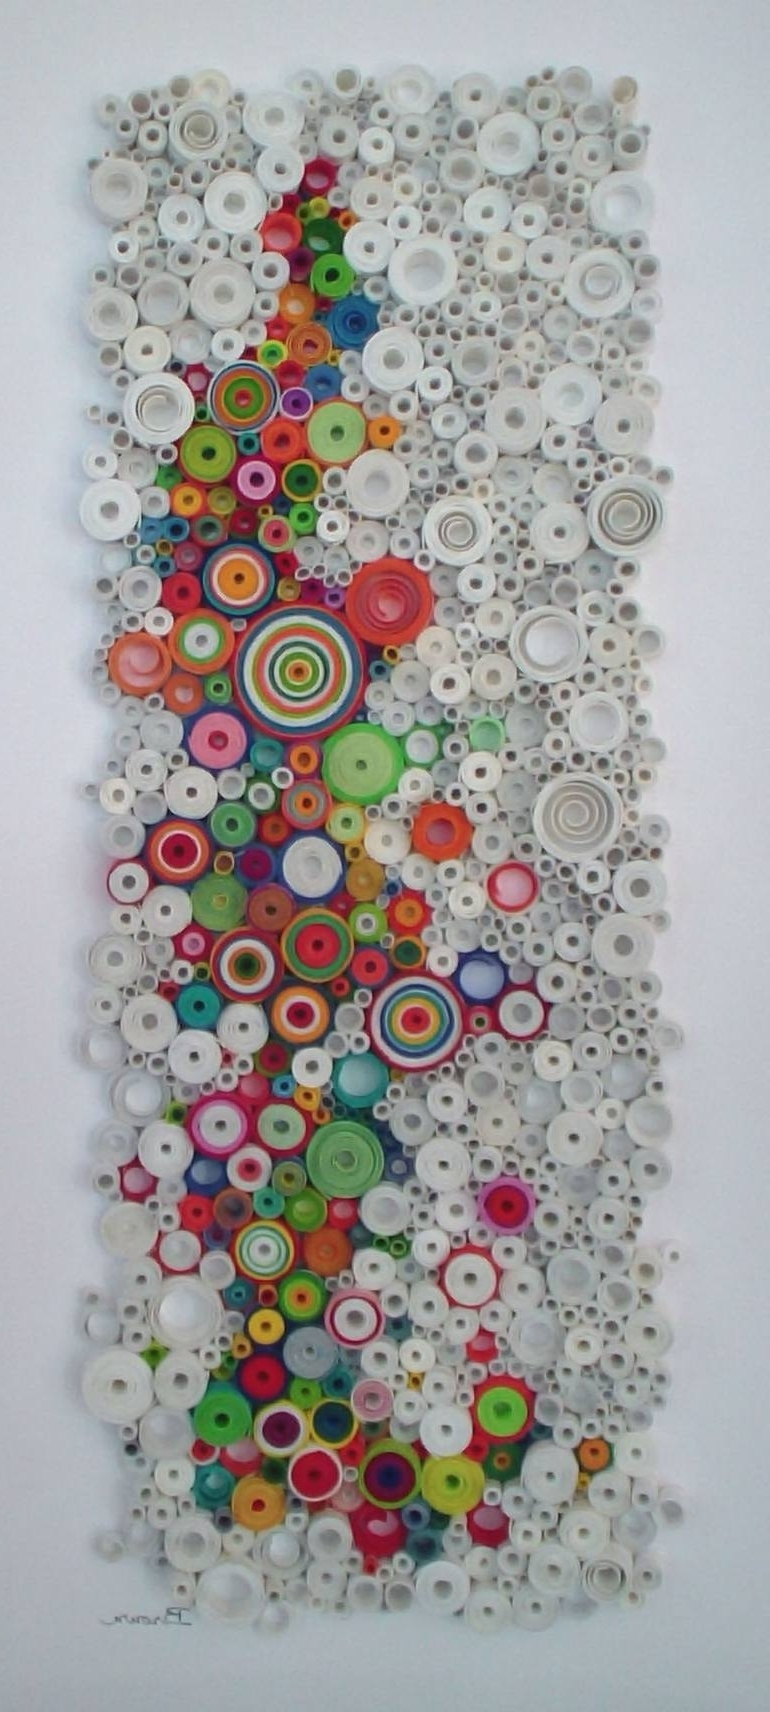 Preferred Saatchi Art: Modern Wall Art, Circular Wall Art, Original 3 Pertaining To 3 Dimensional Wall Art (View 16 of 20)